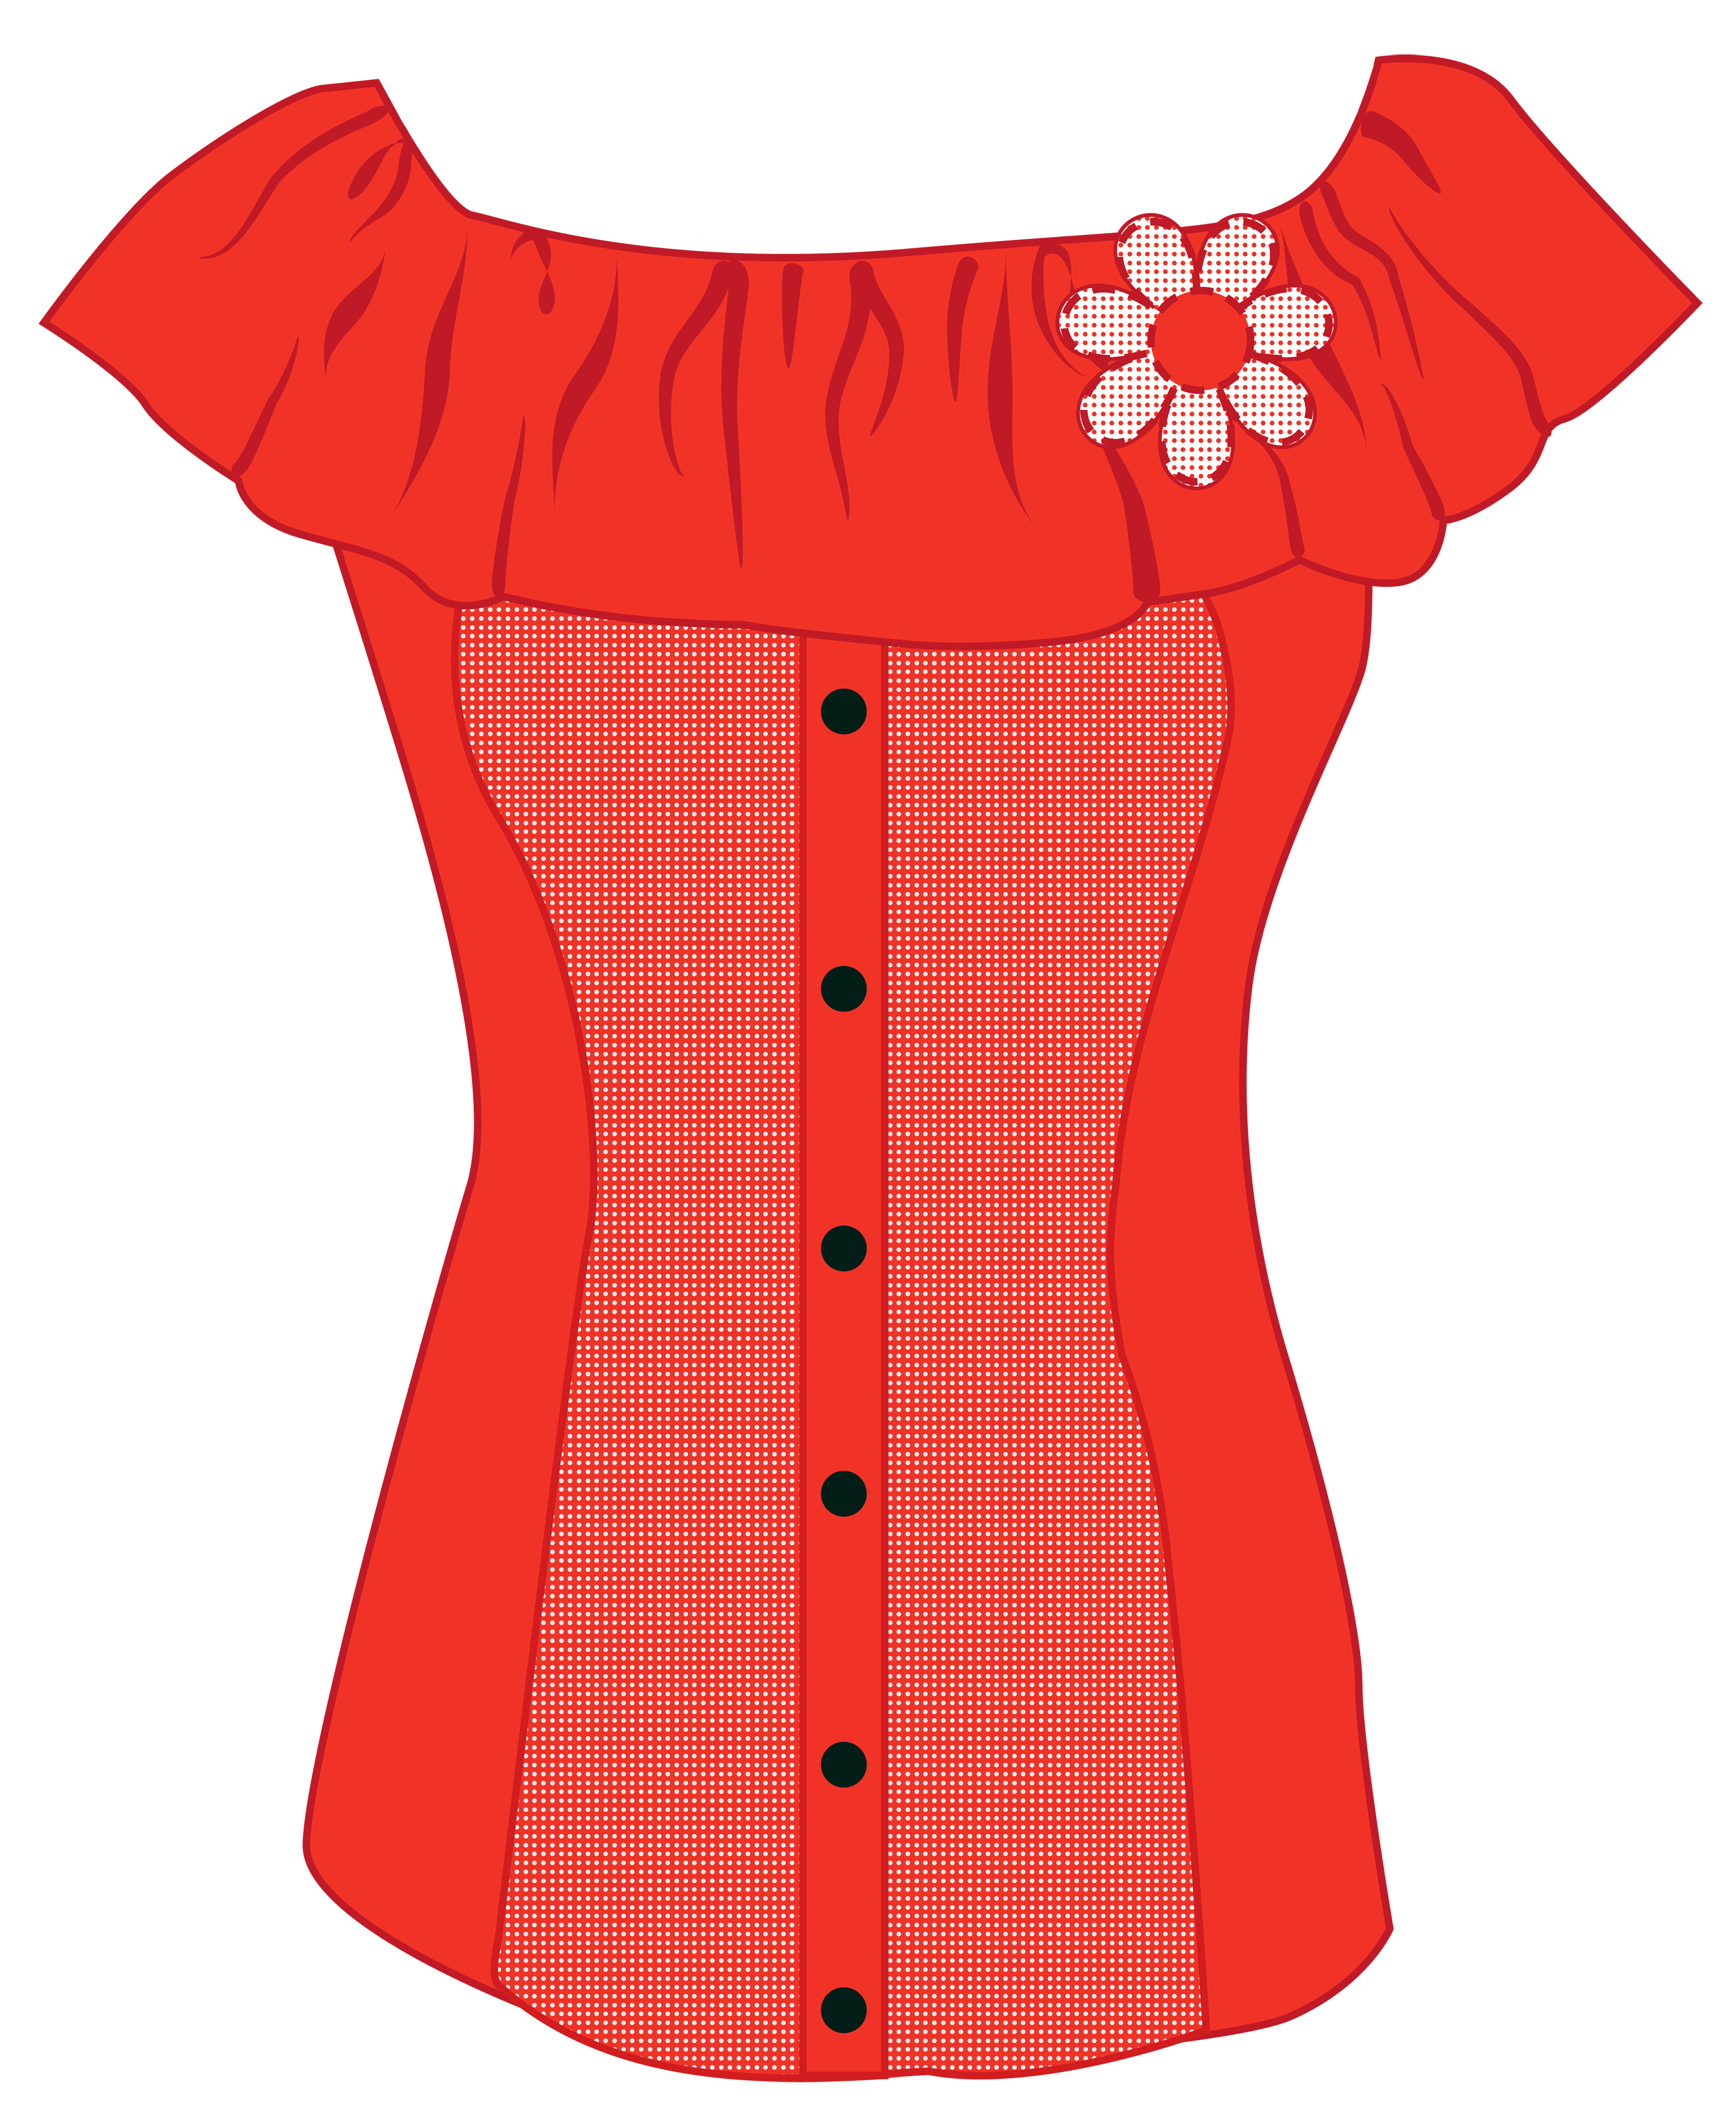 Clipart shirt woman shirt. Female red top png